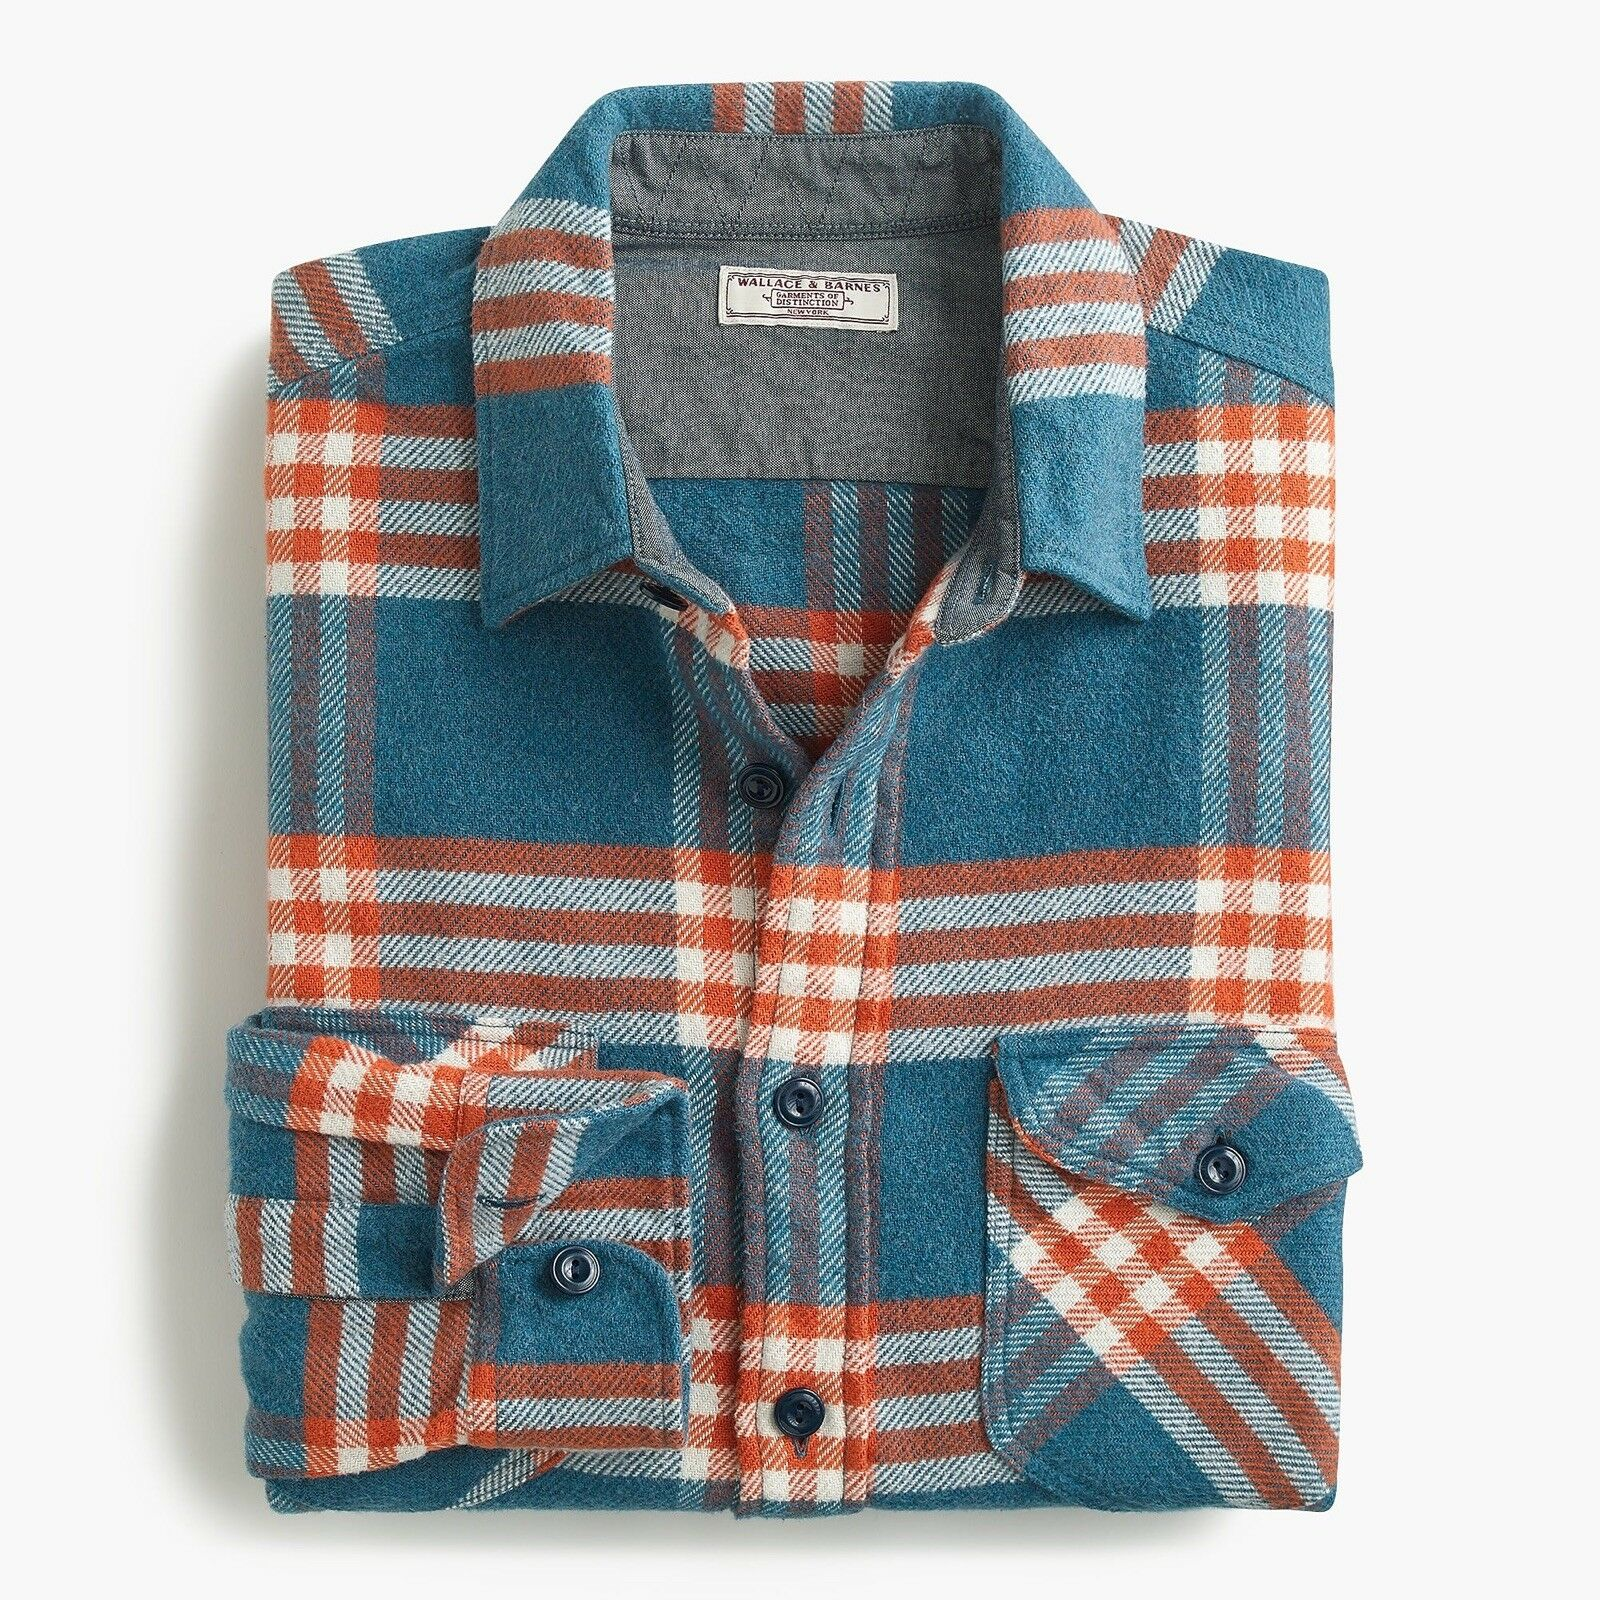 Wallace & Barnes Heavyweight Flannel Shirt in Vista Plaid Sz. Large Courier bluee